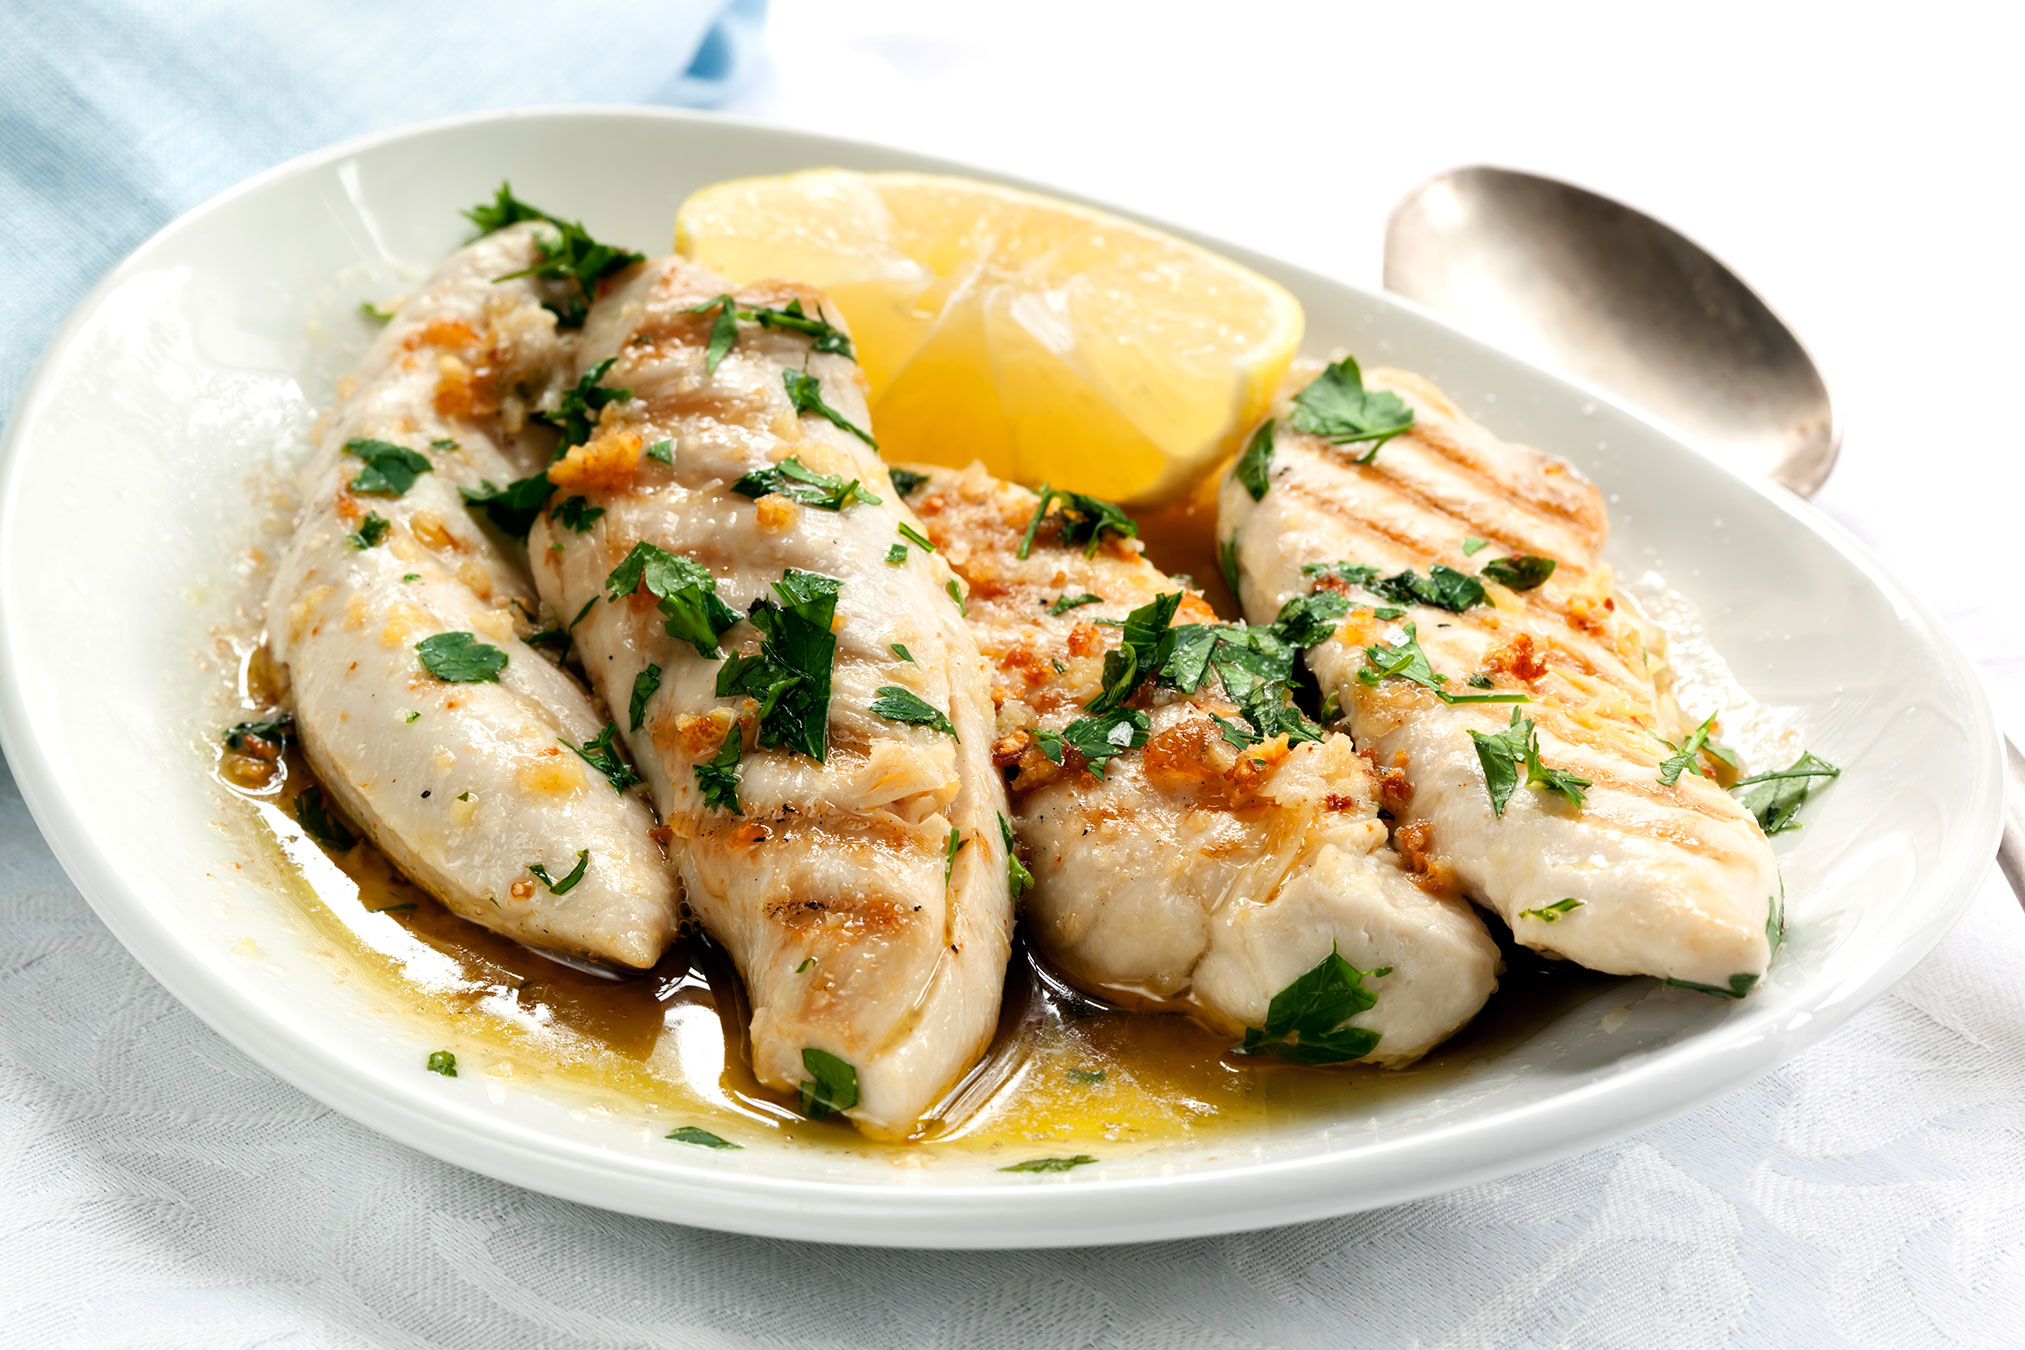 Grilled Chicken With Walla Walla Onion & Mint